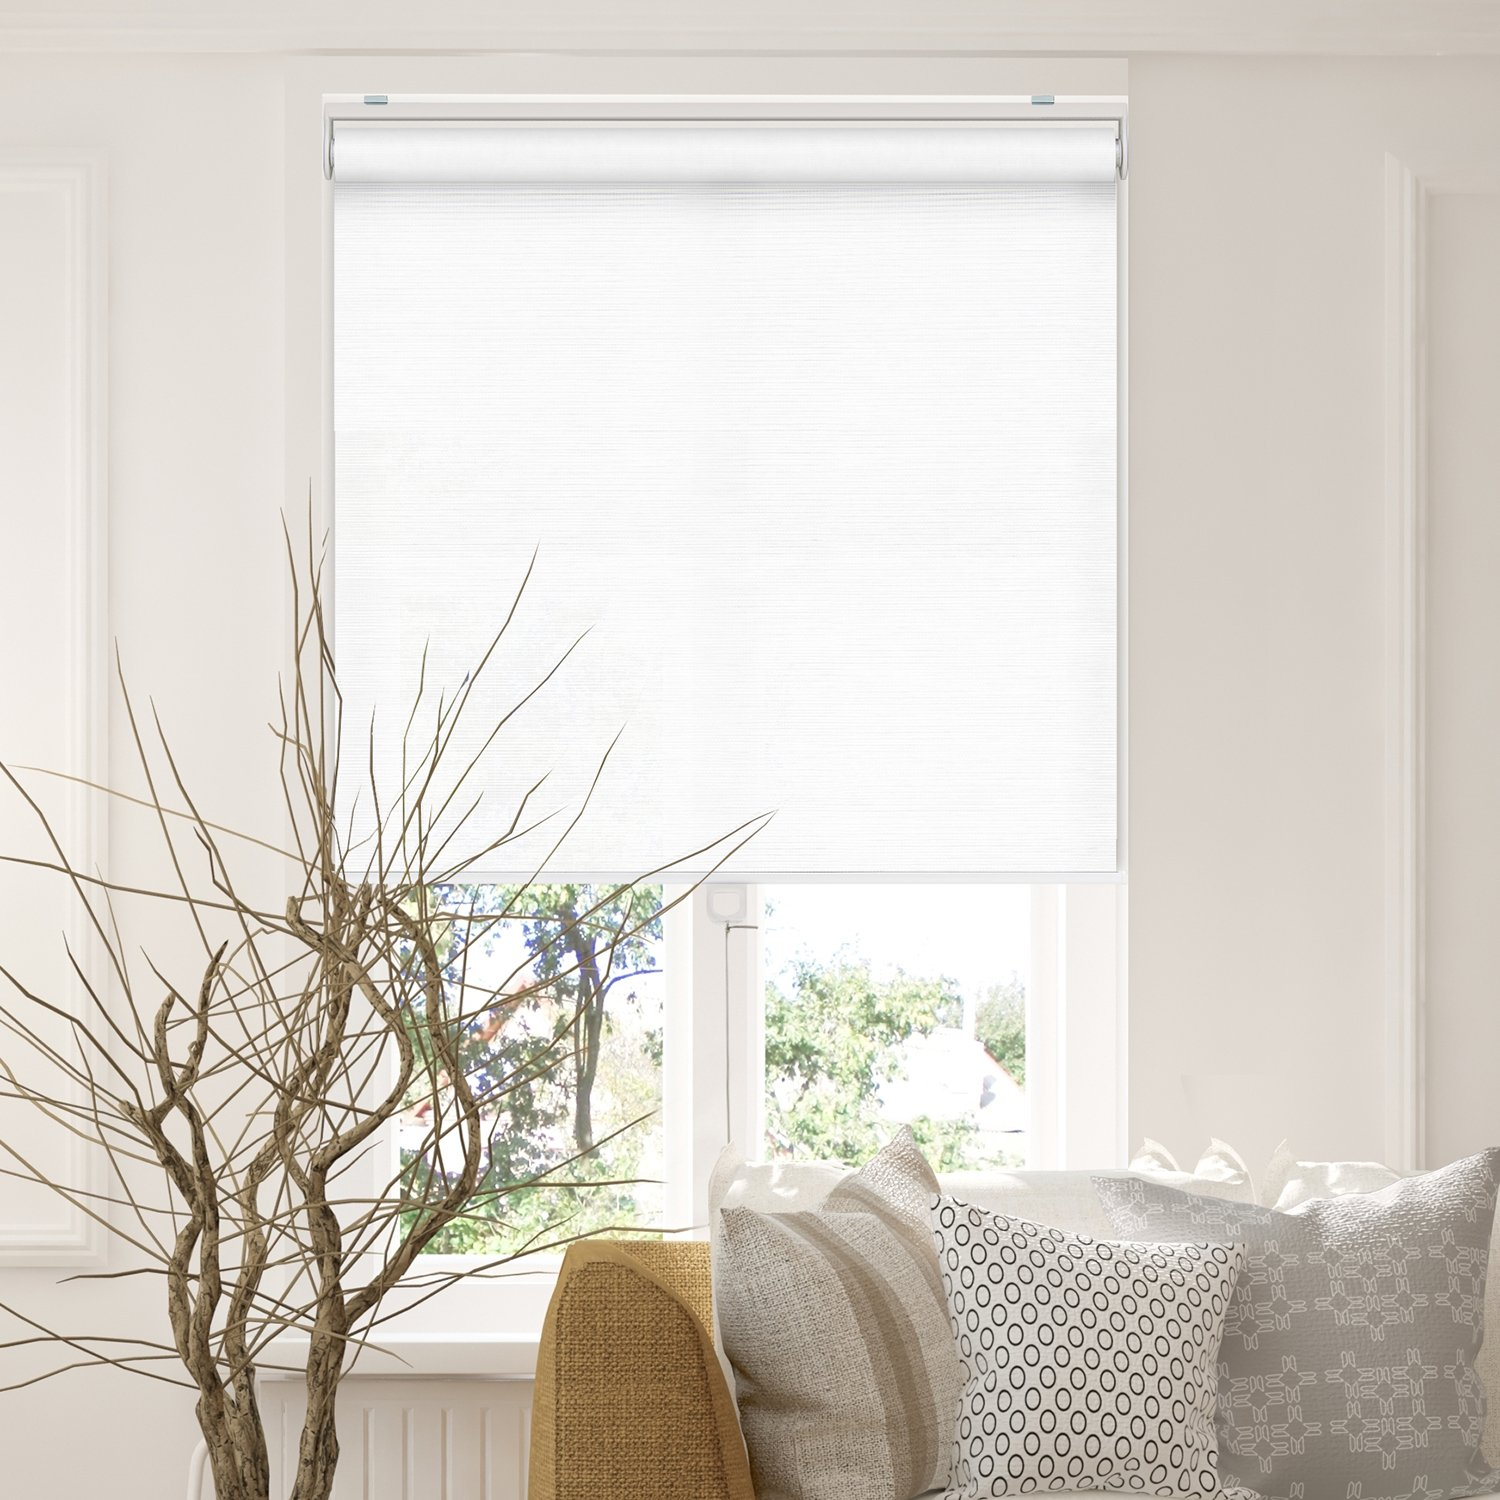 """Chicology Cordless Roller Shades Snap-N'-Glide, Privacy & Natural WovenPerfect for Living Room/Bedroom/Nursery/Office and More.Felton Sand (Privacy & Natural Woven), 33""""W X 72""""H"""